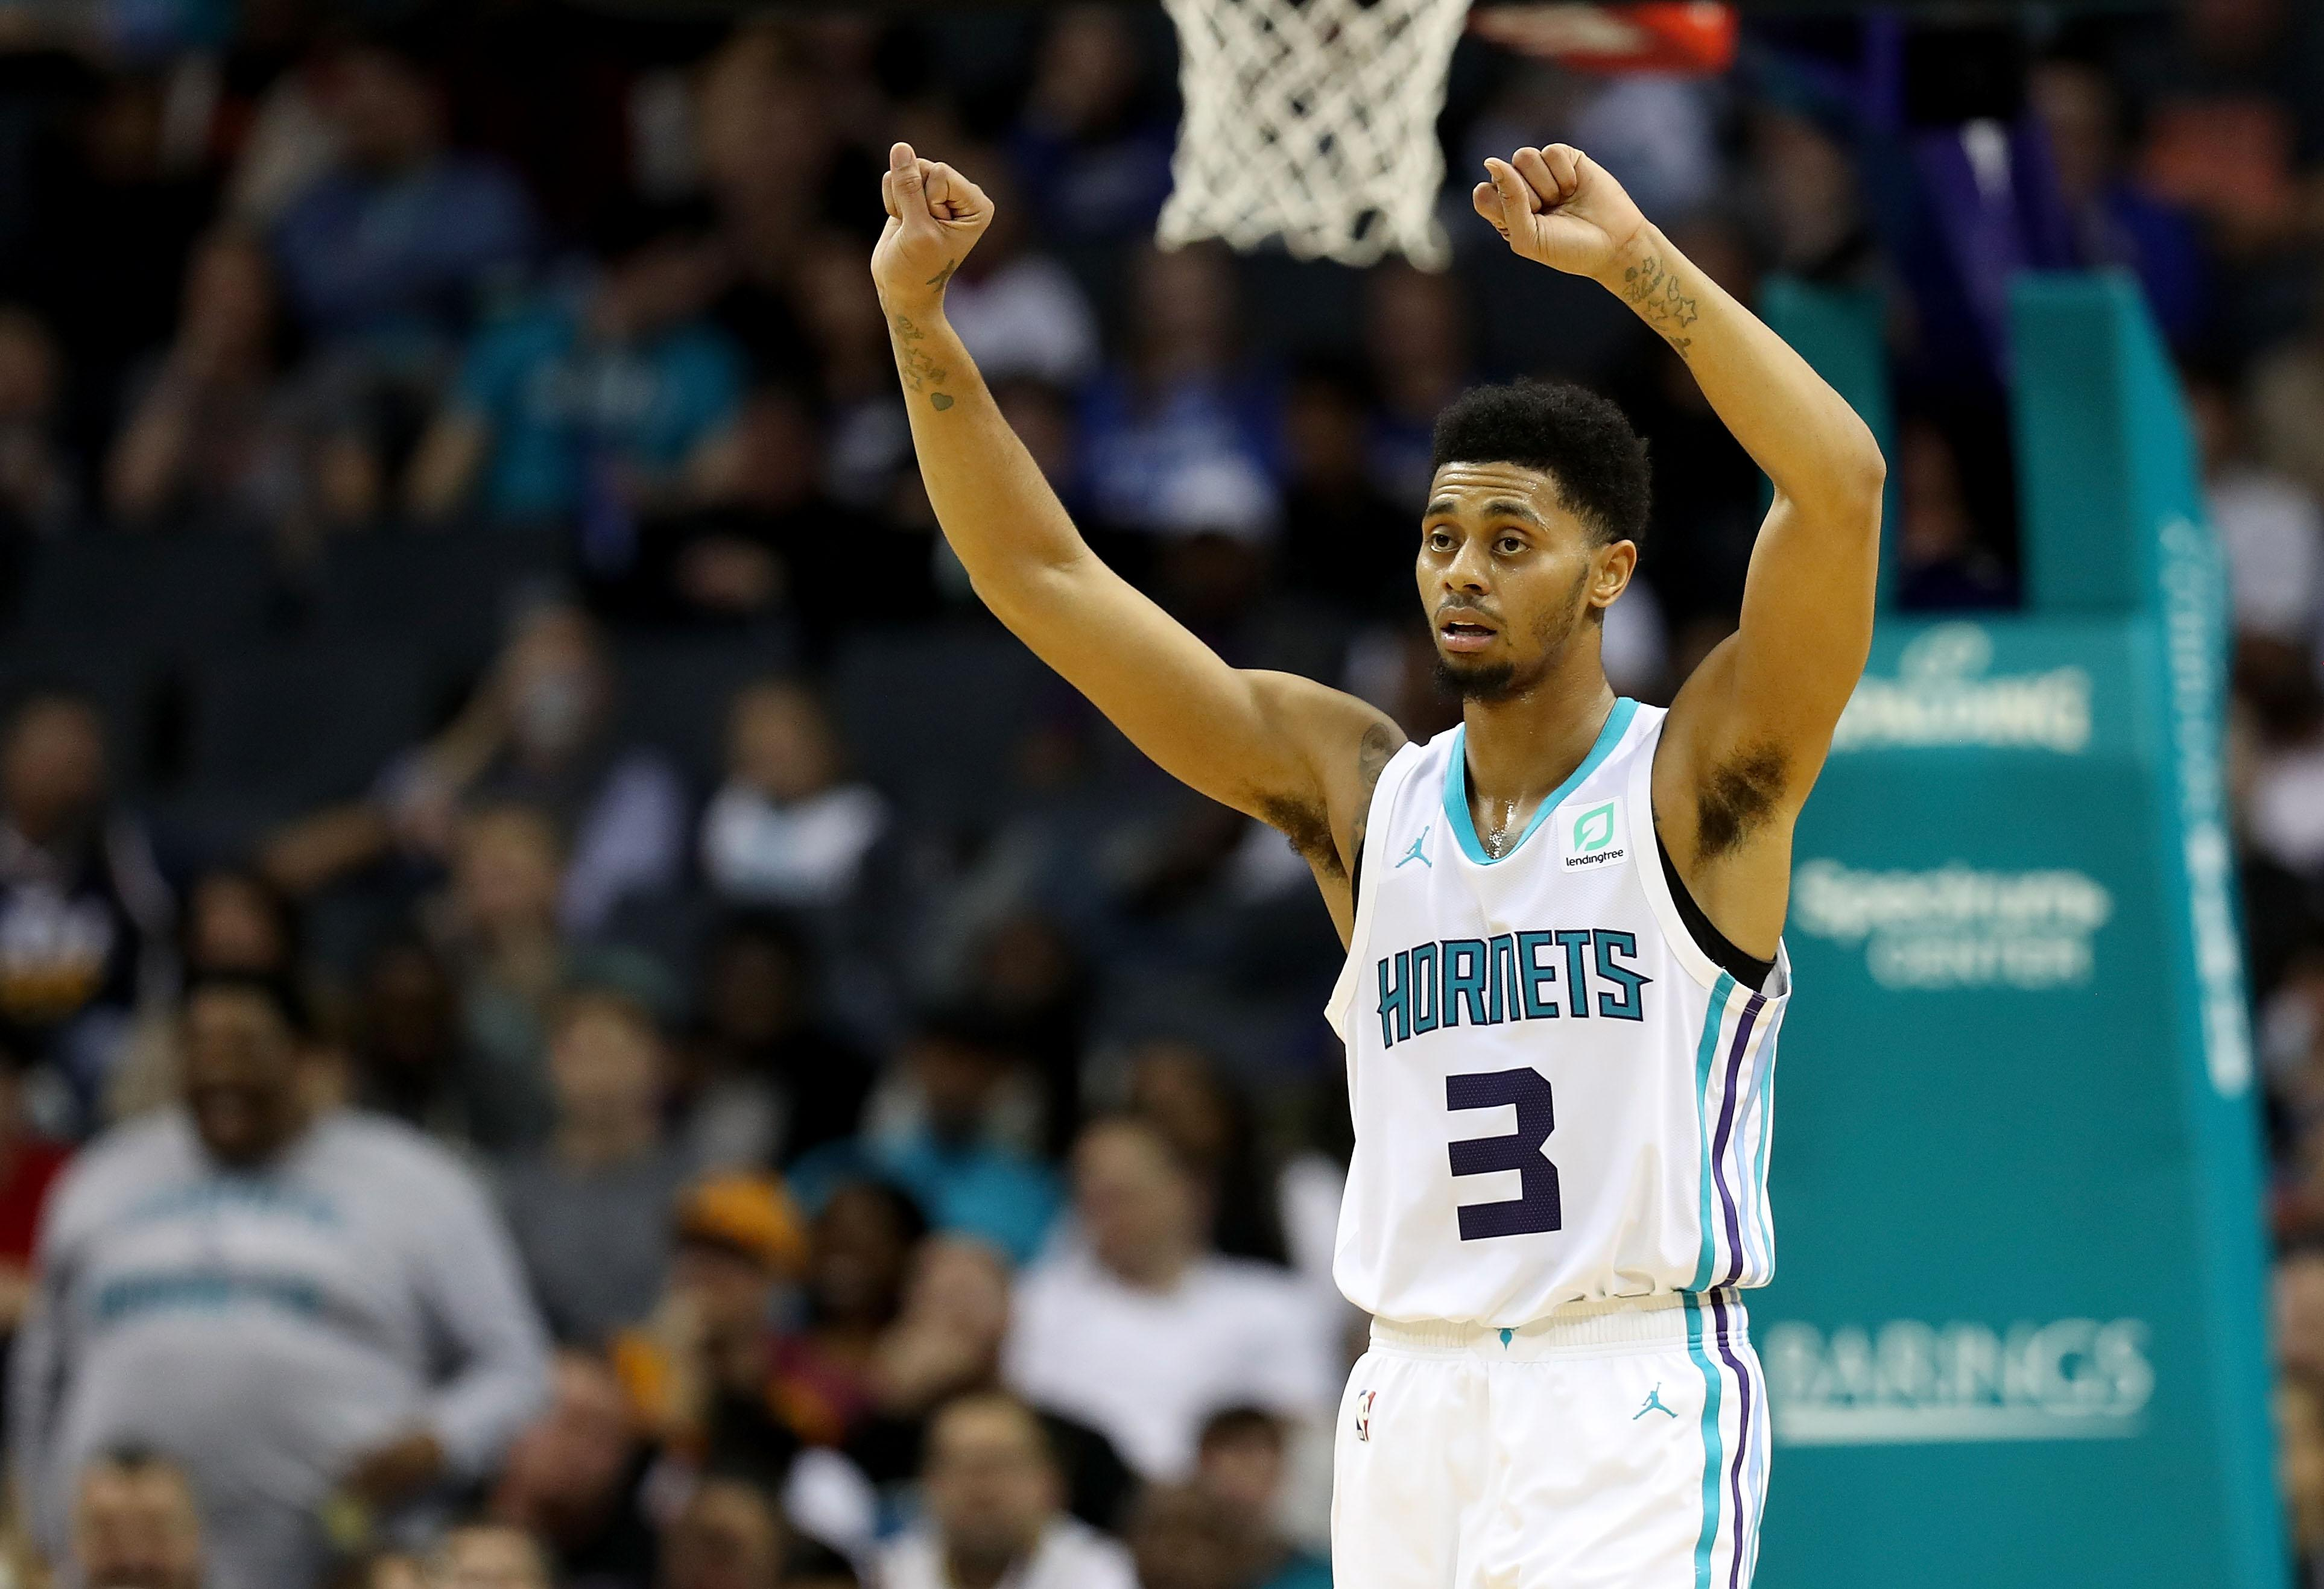 Jeremy Lamb's Insane Half-Court Game-Winner Gives March the Buzzer-Beater it Needs